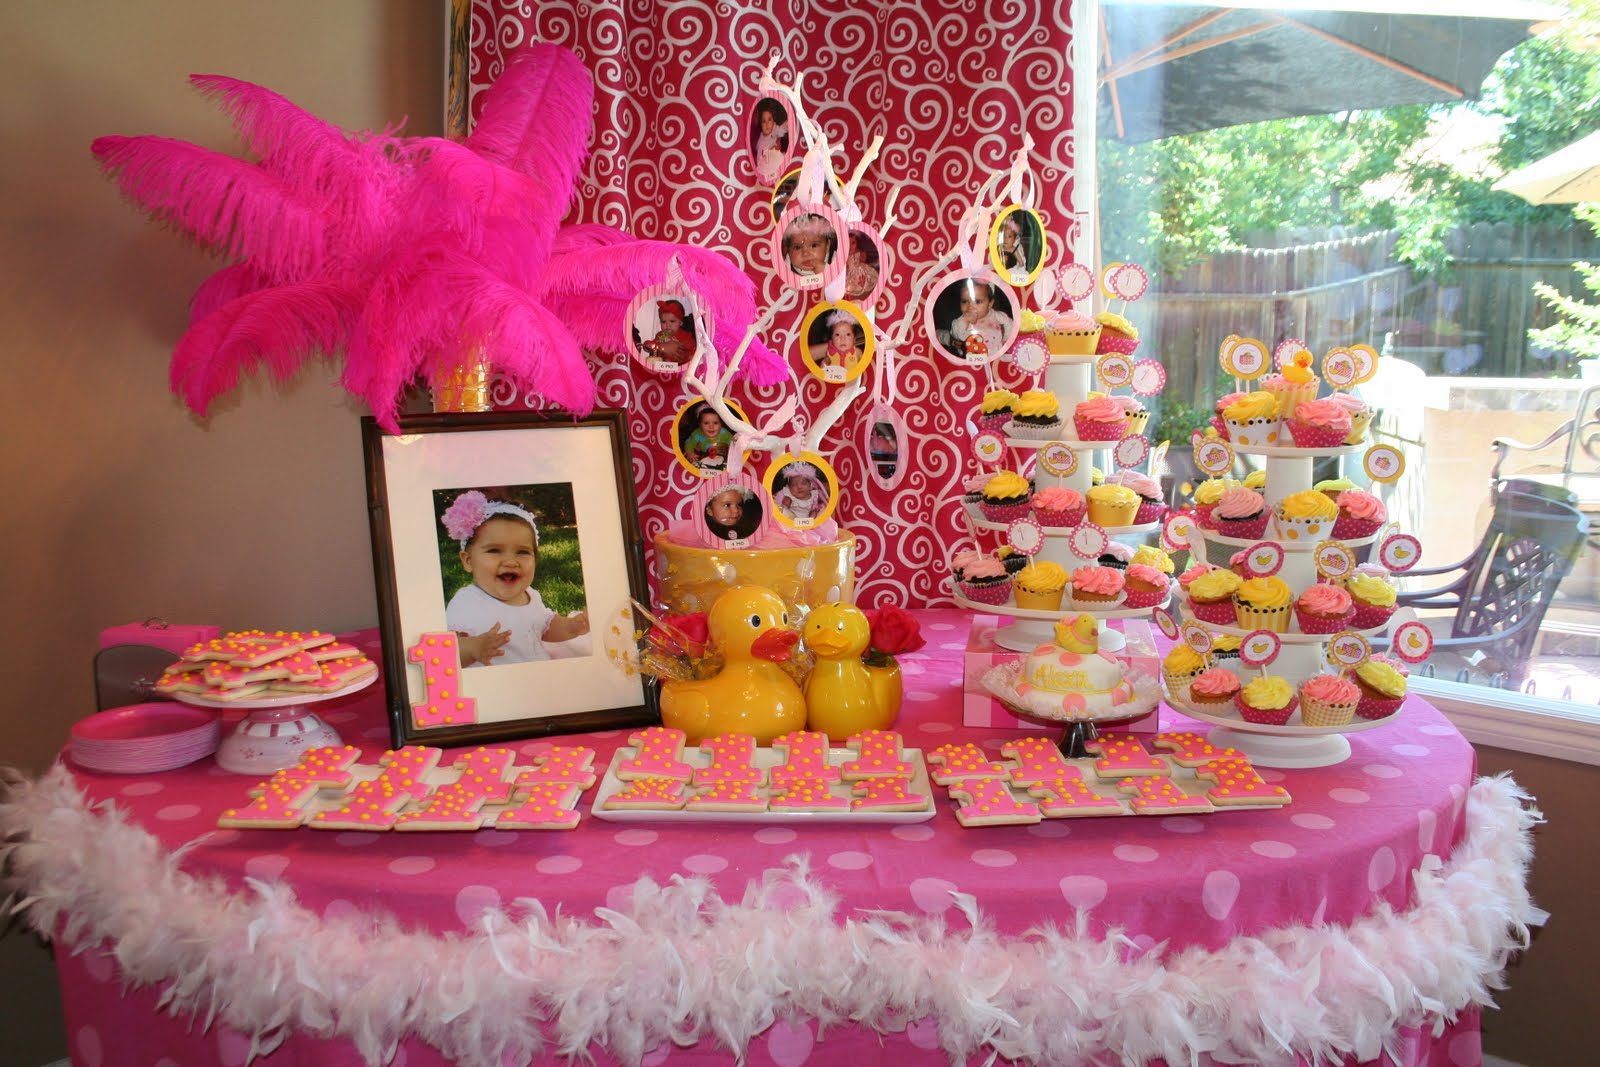 decorating ideas for 1st birthday party